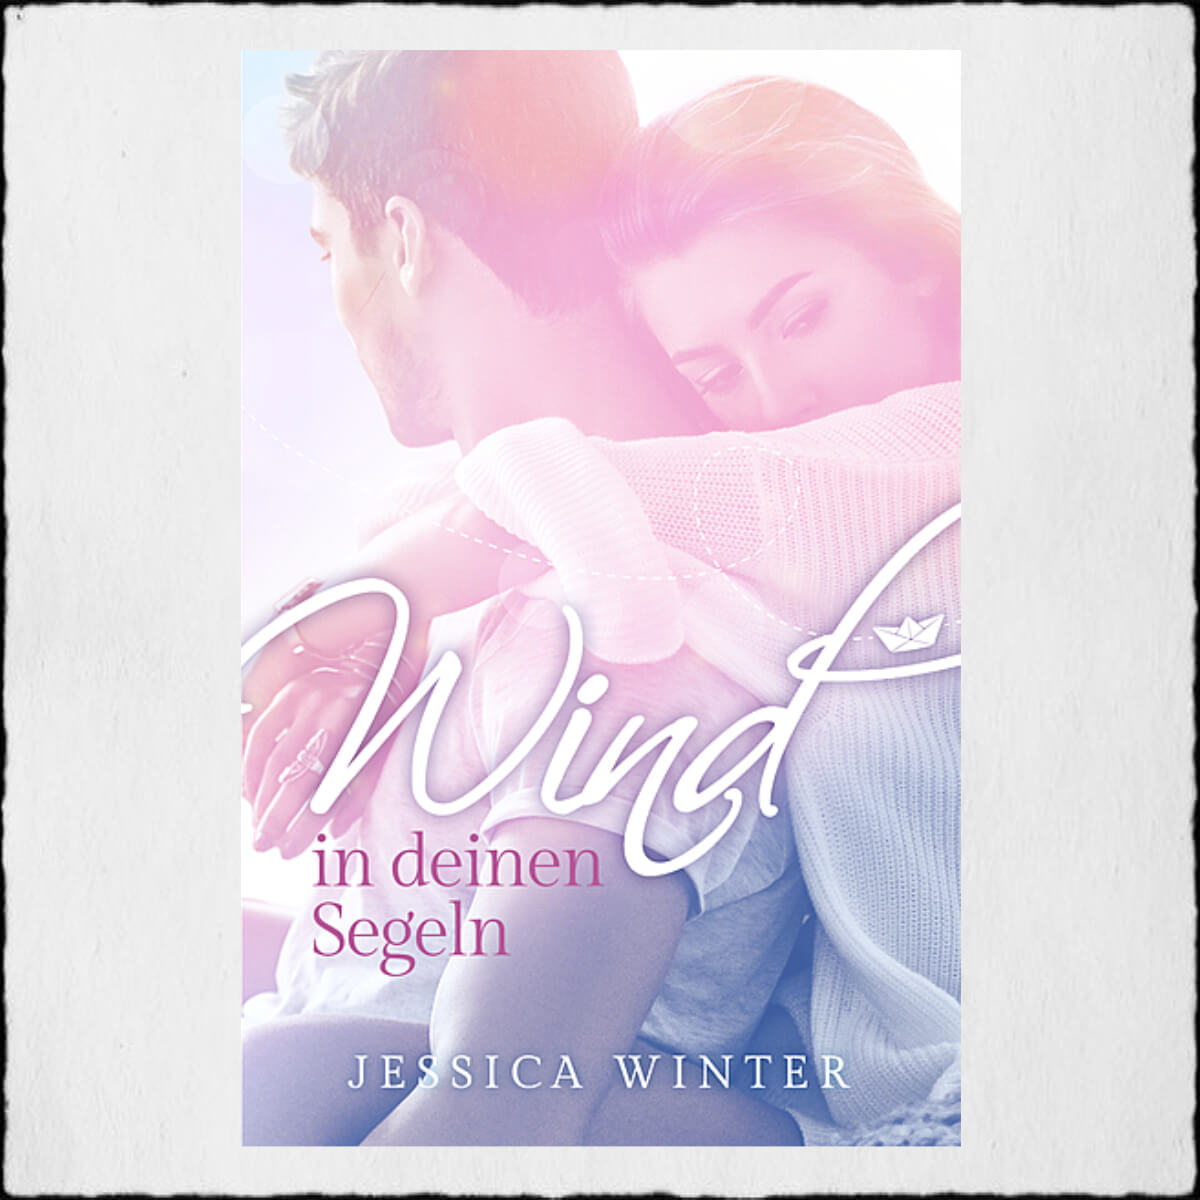 "Cover: Jessica Winter - ""Wind in deinen Segeln"" © 2019, Jessica Winter, Selbstpublikation"